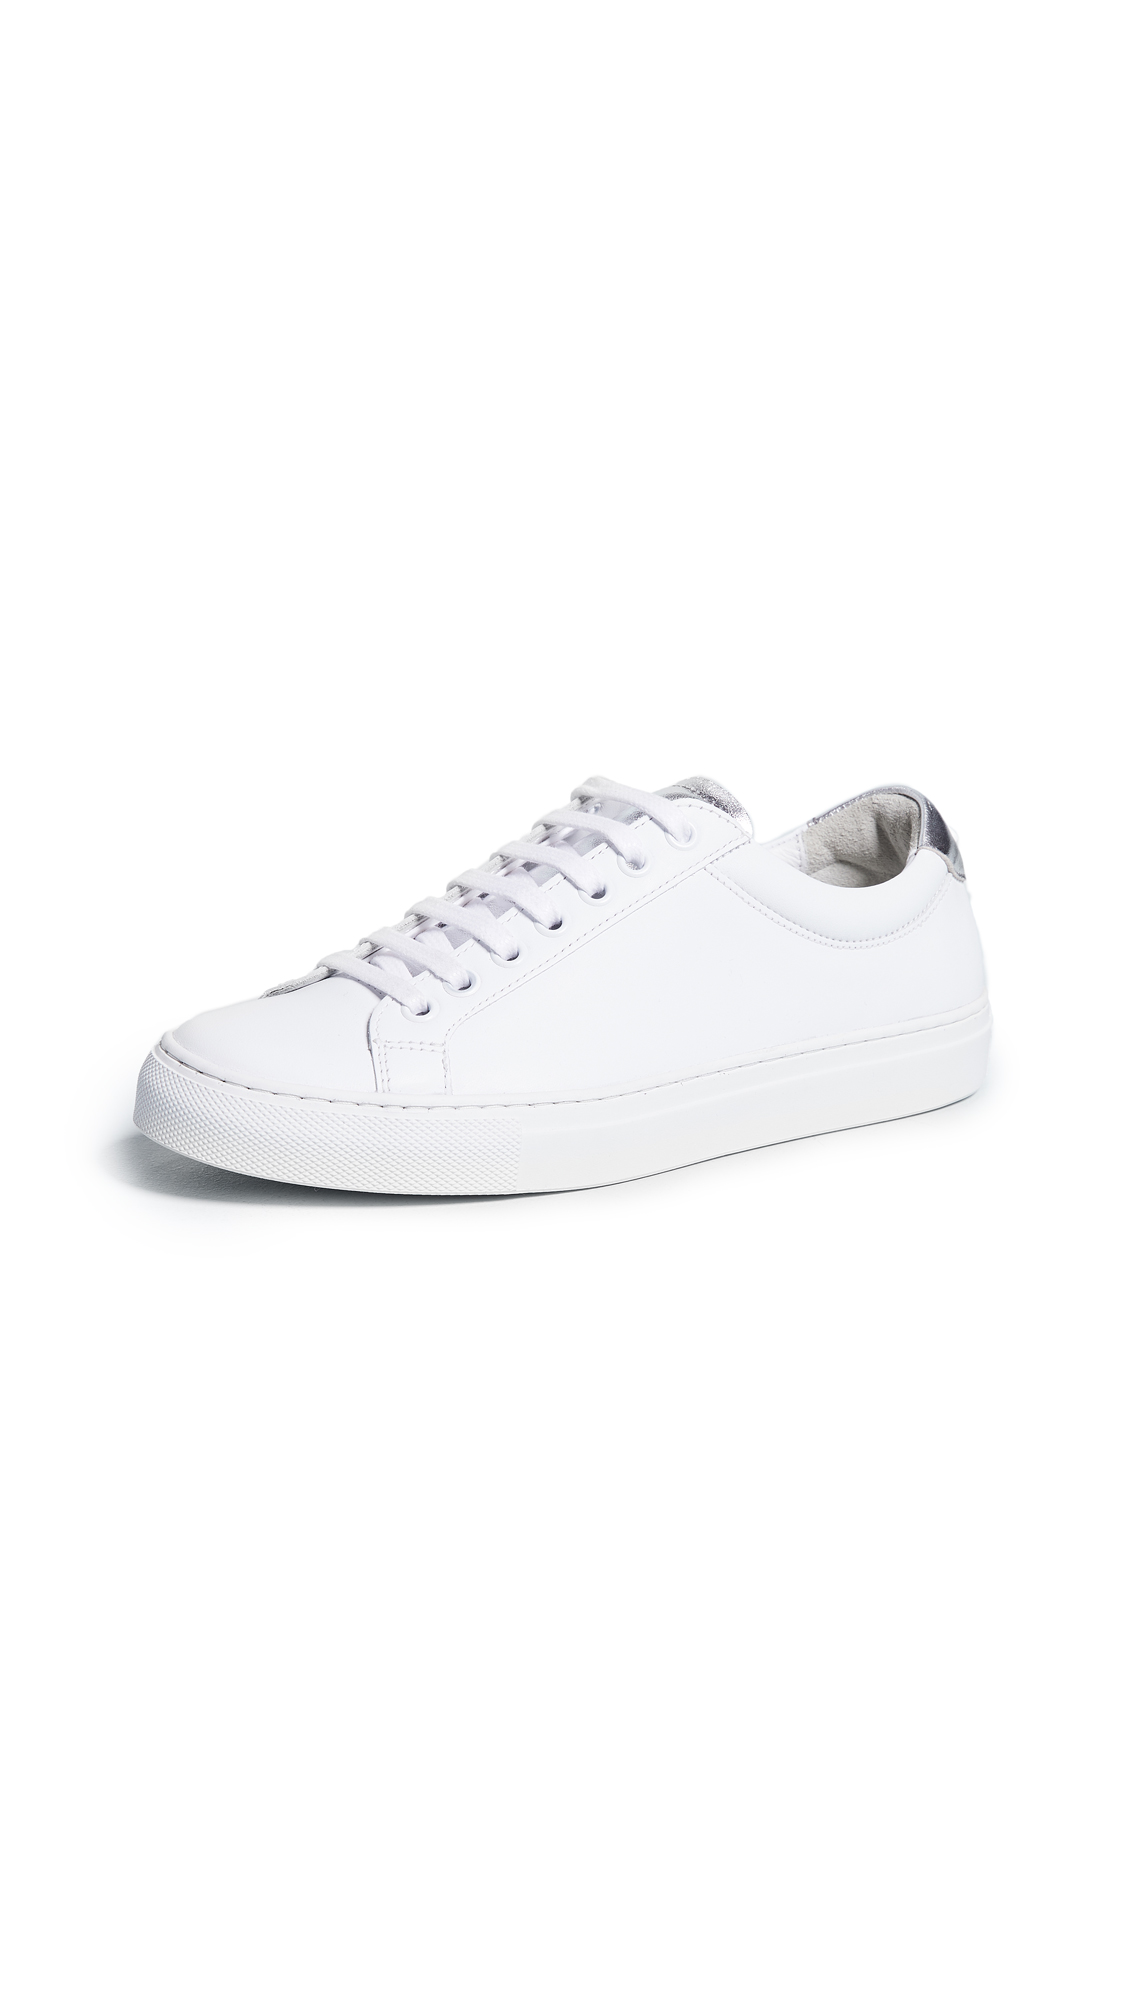 Courreges Classic Sneakers - White/Silver